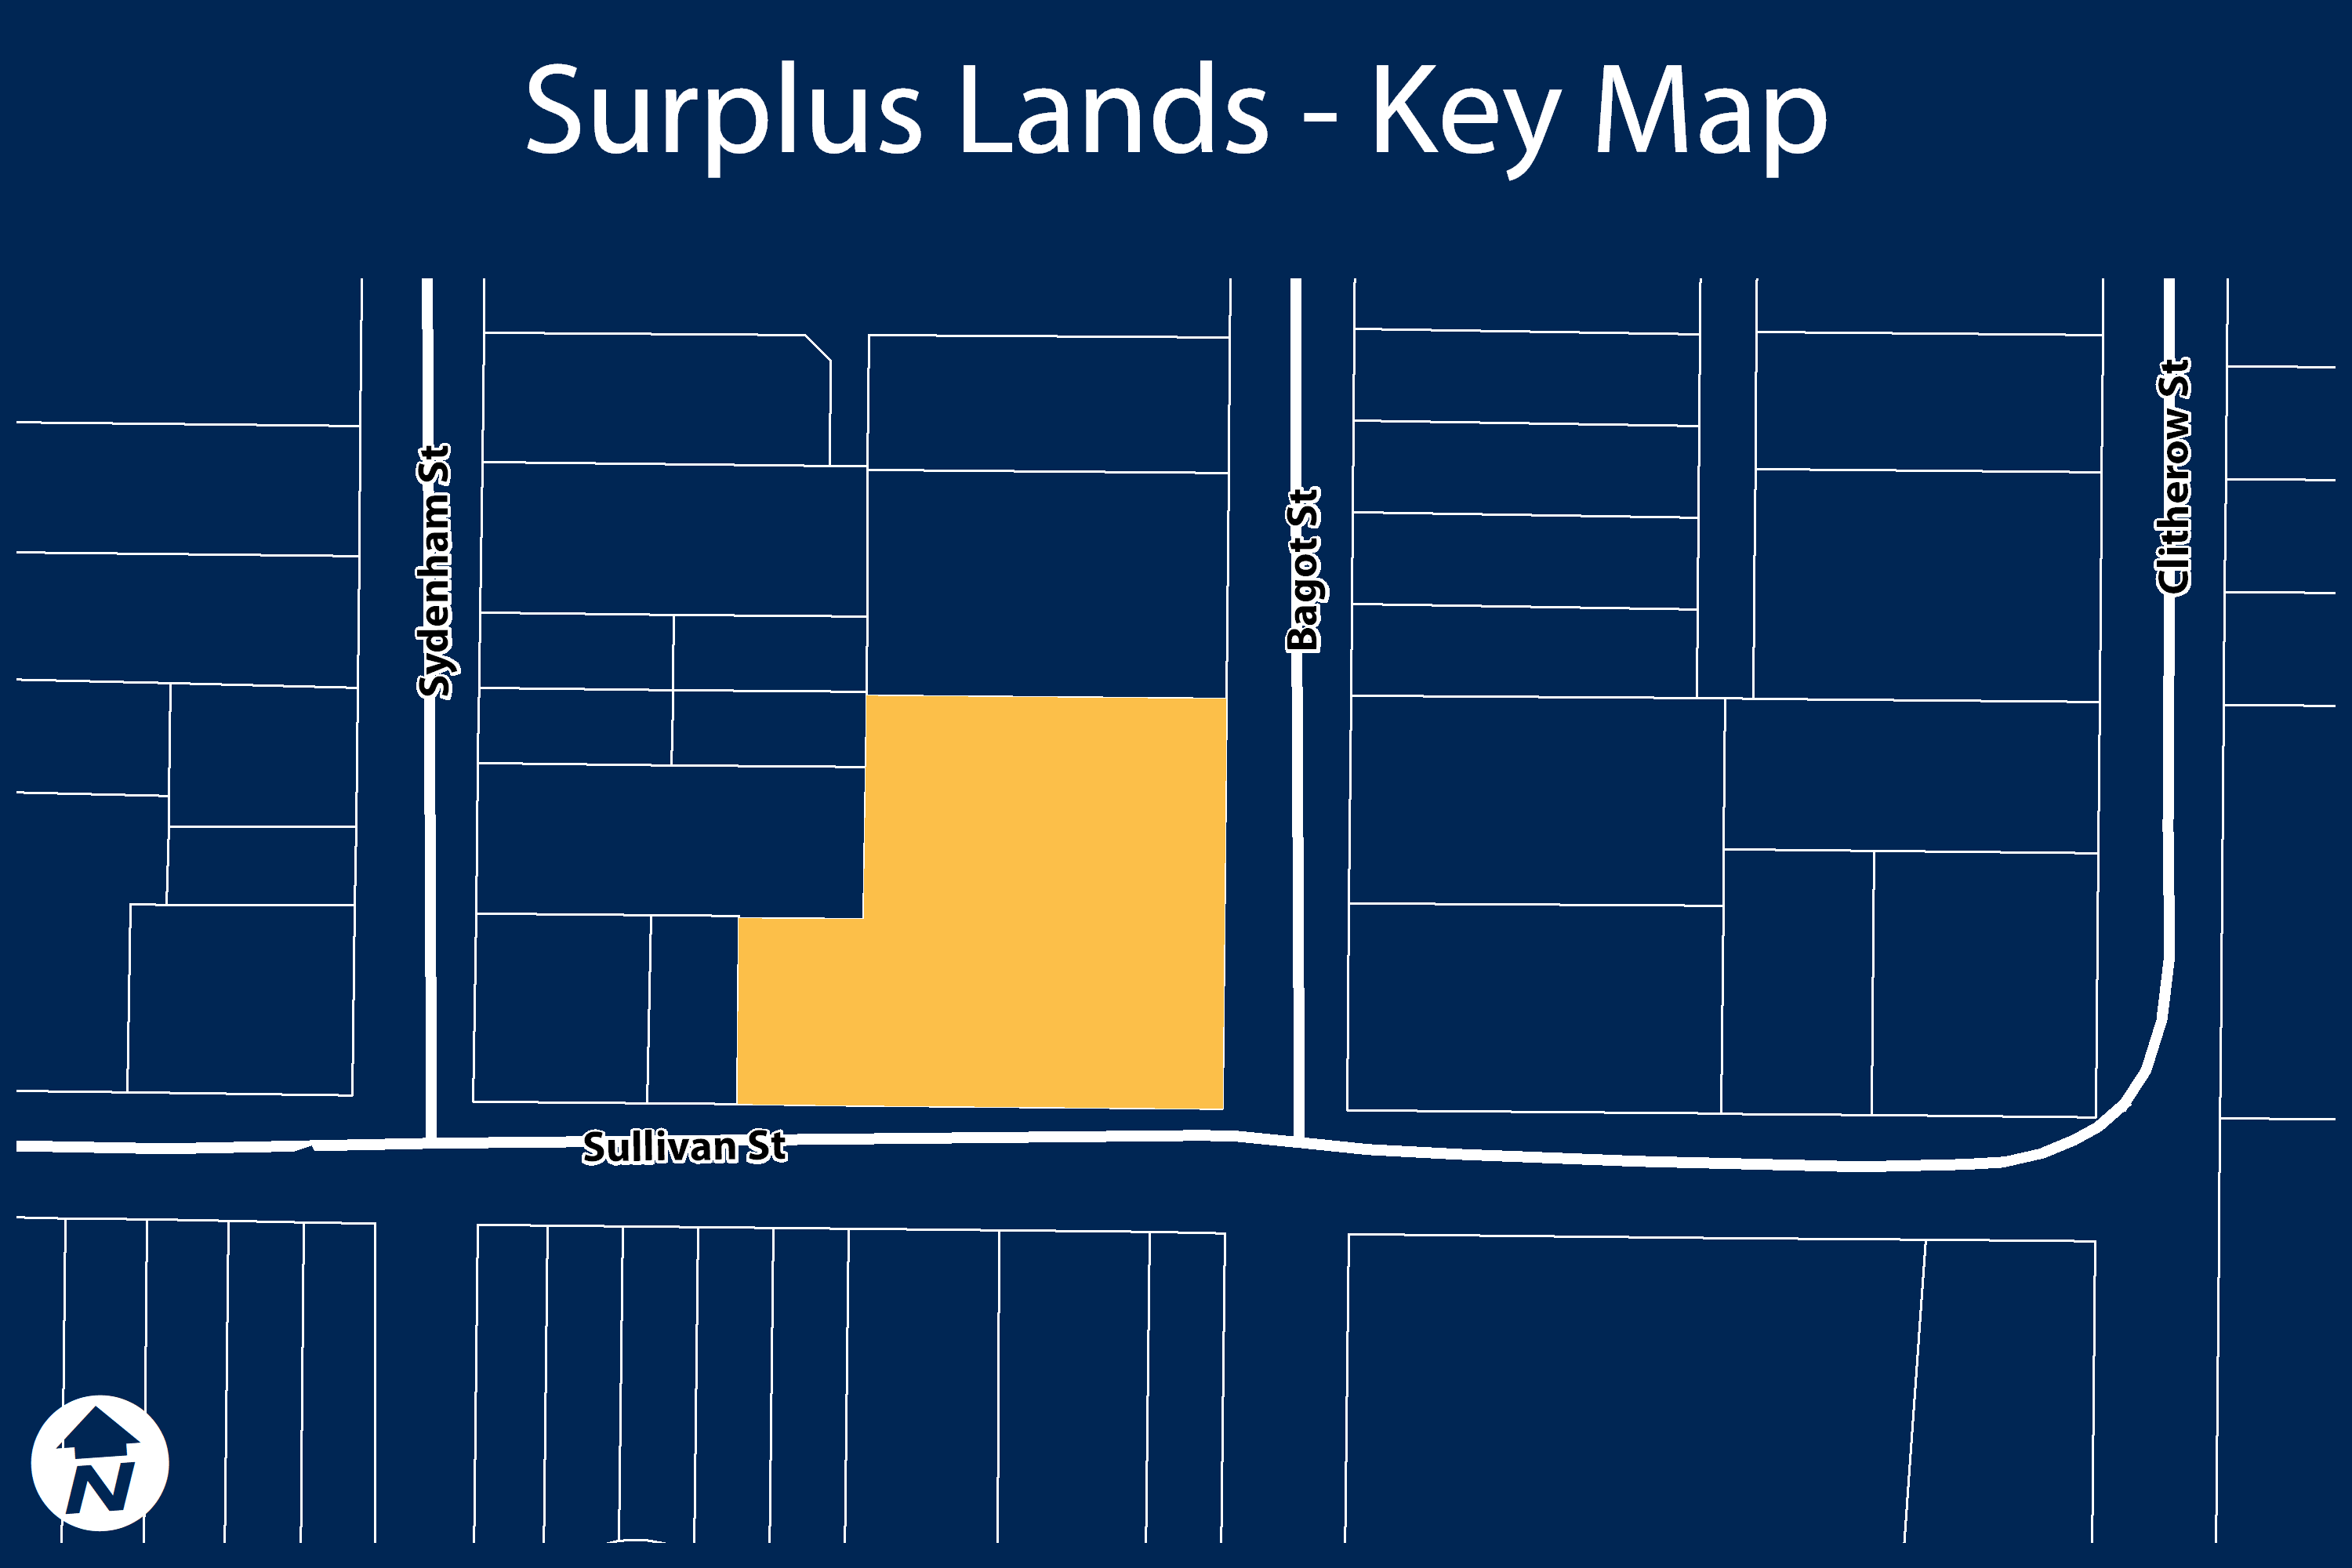 Key map showing location of surplus lands.